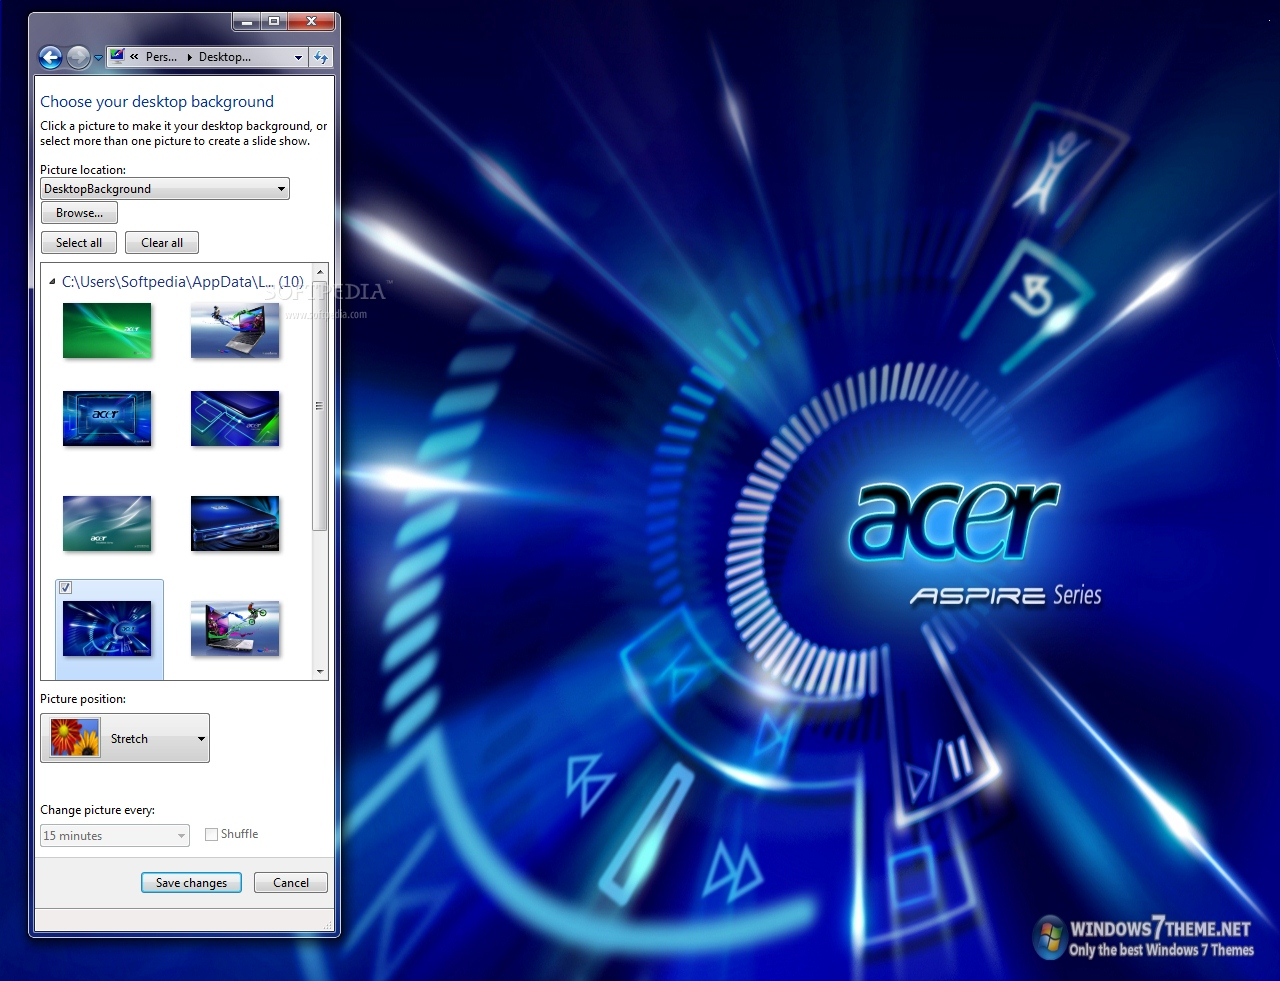 acer windows 7 theme this is a sample from what this theme pack will display